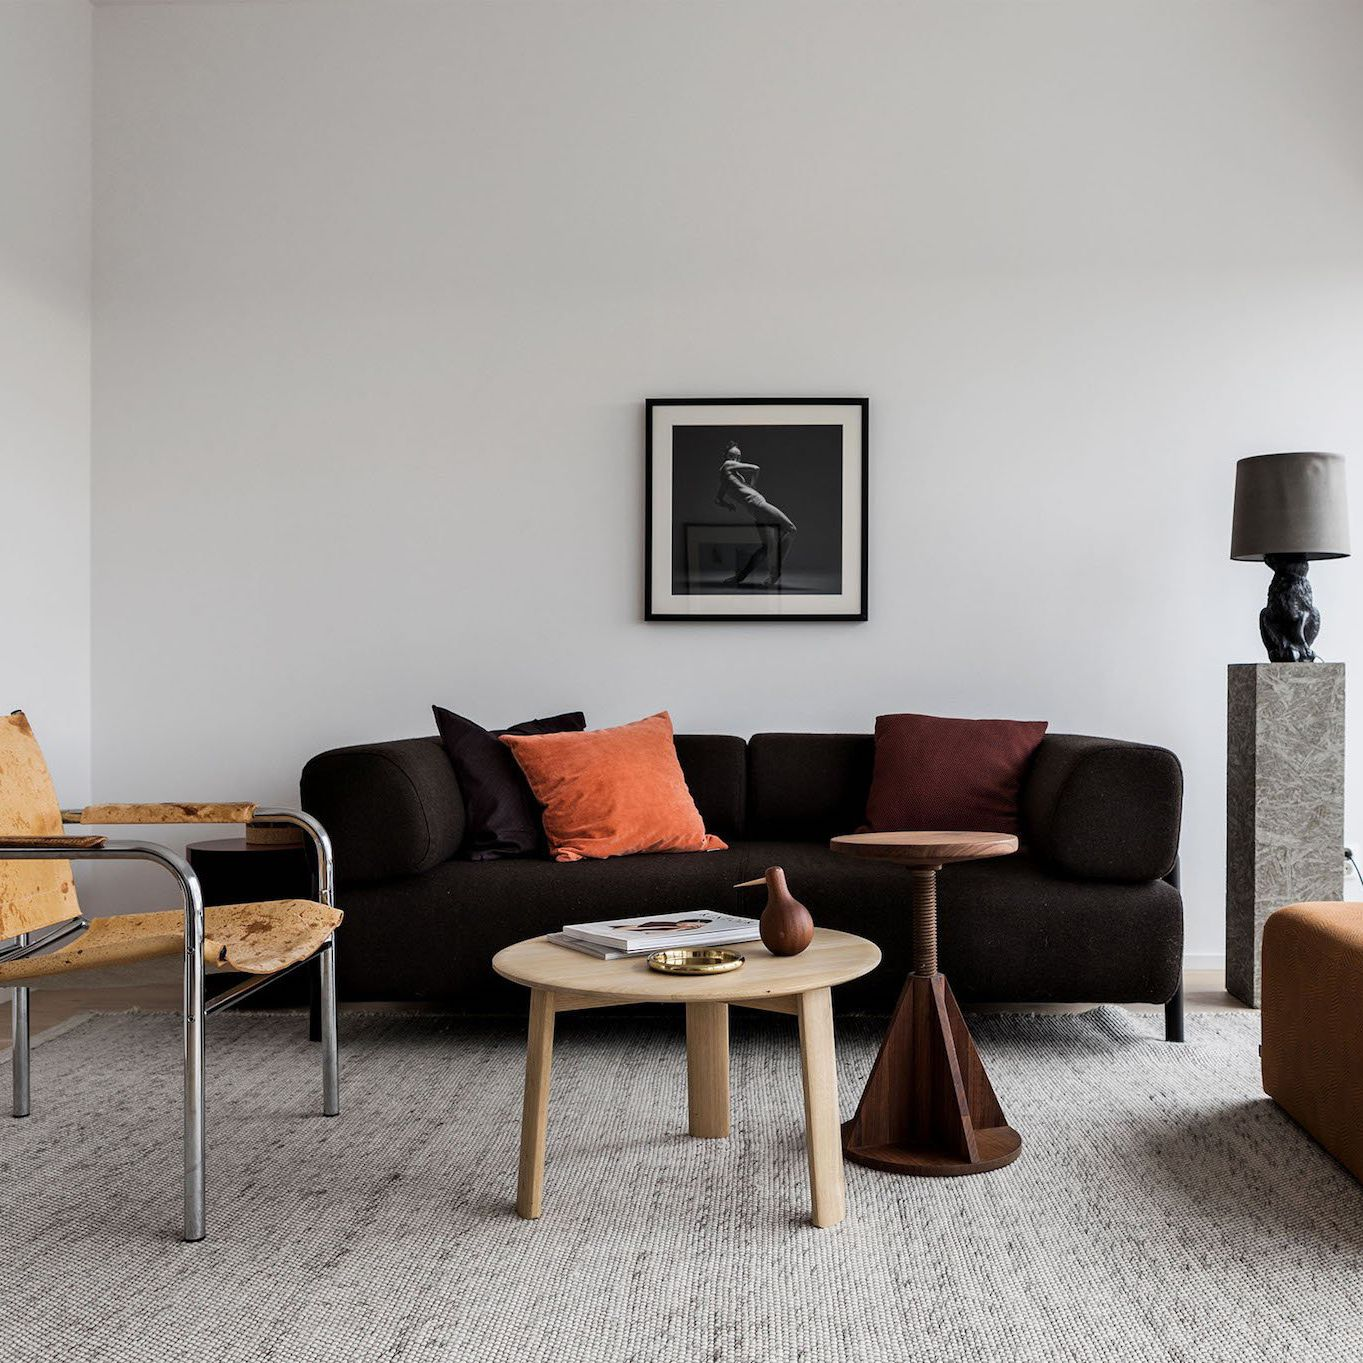 Merveilleux Contemporary Coffee Table / Oak / Round   ALLE By Staffan Holm